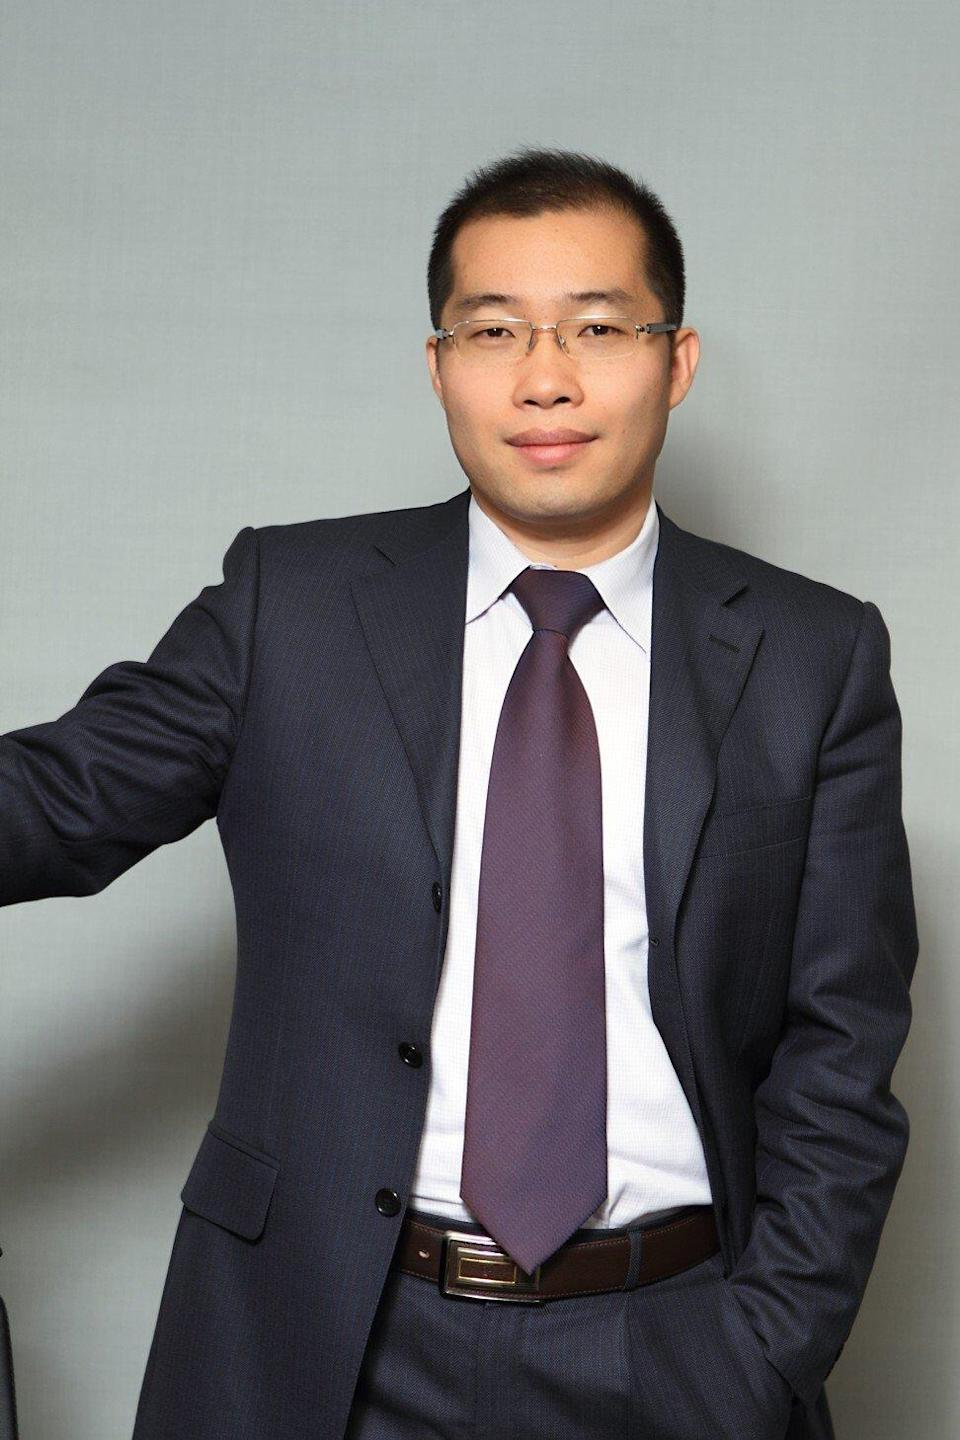 Han Guangzhe, a fund manager in Beijing at Golden Eagle Asset Management. Photo: Handout